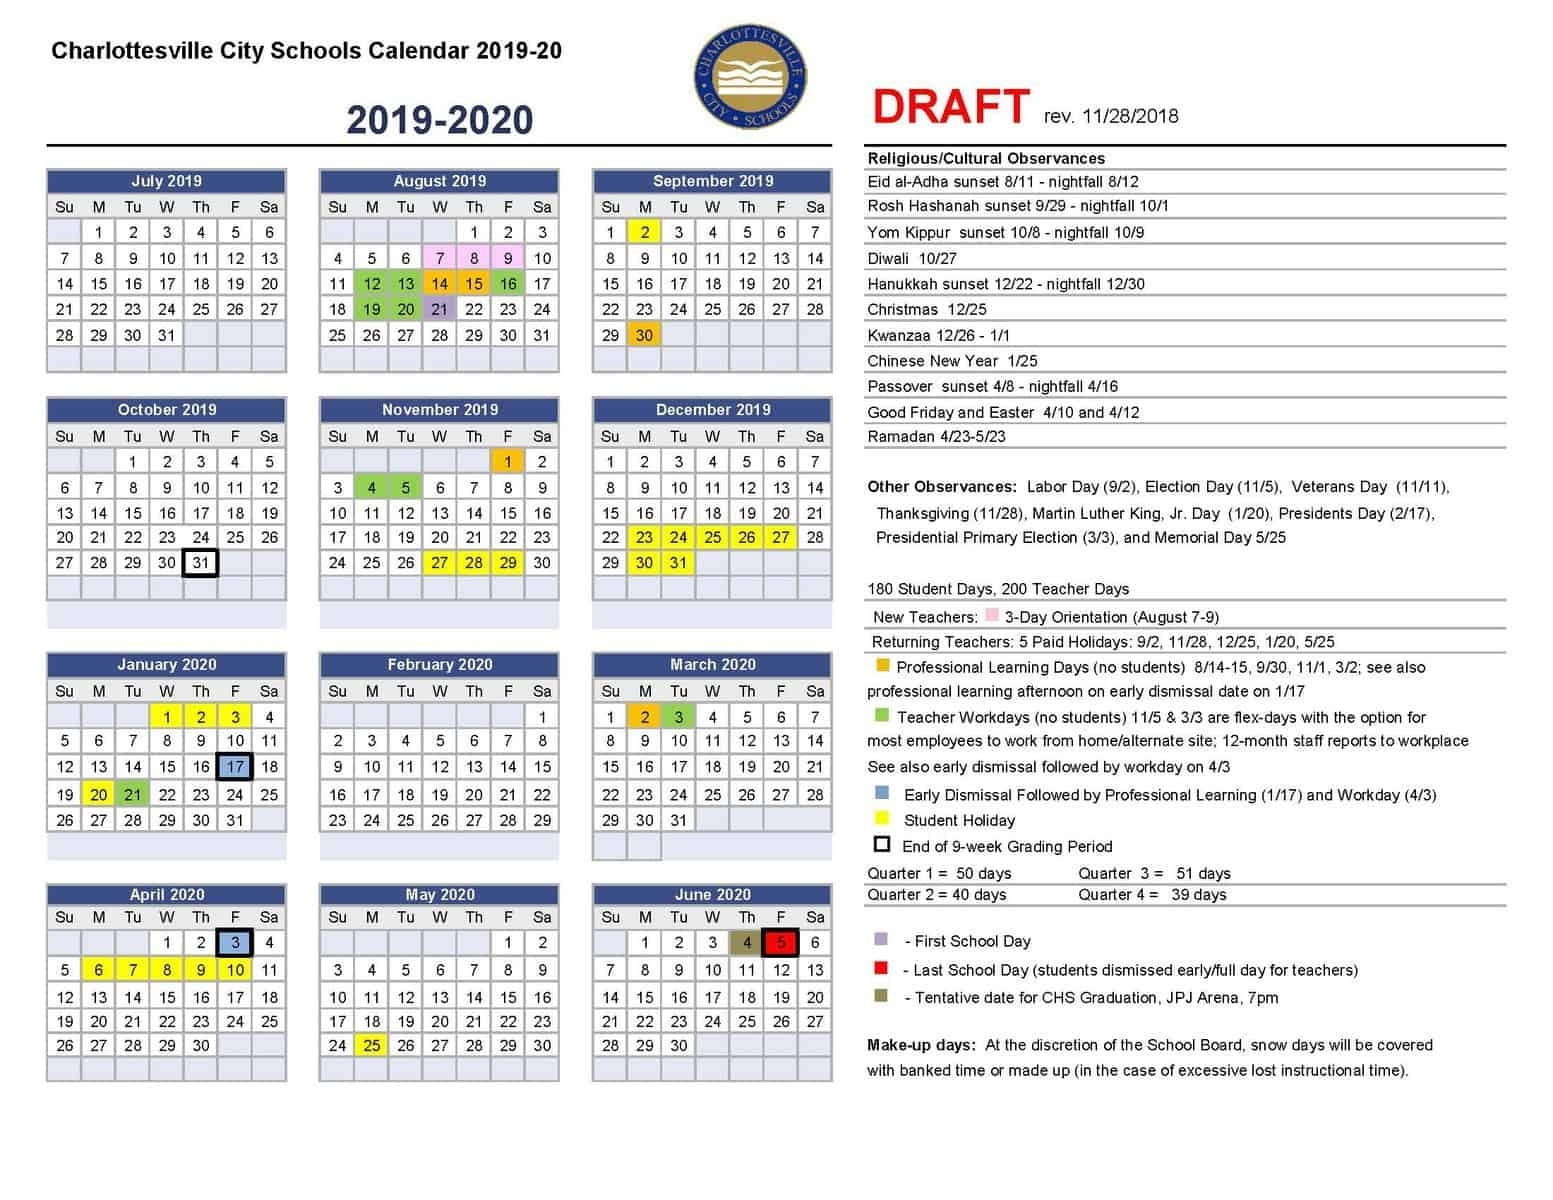 Draft Calendar For 2019-20 | Charlottesville City Schools Calendar 2019 20